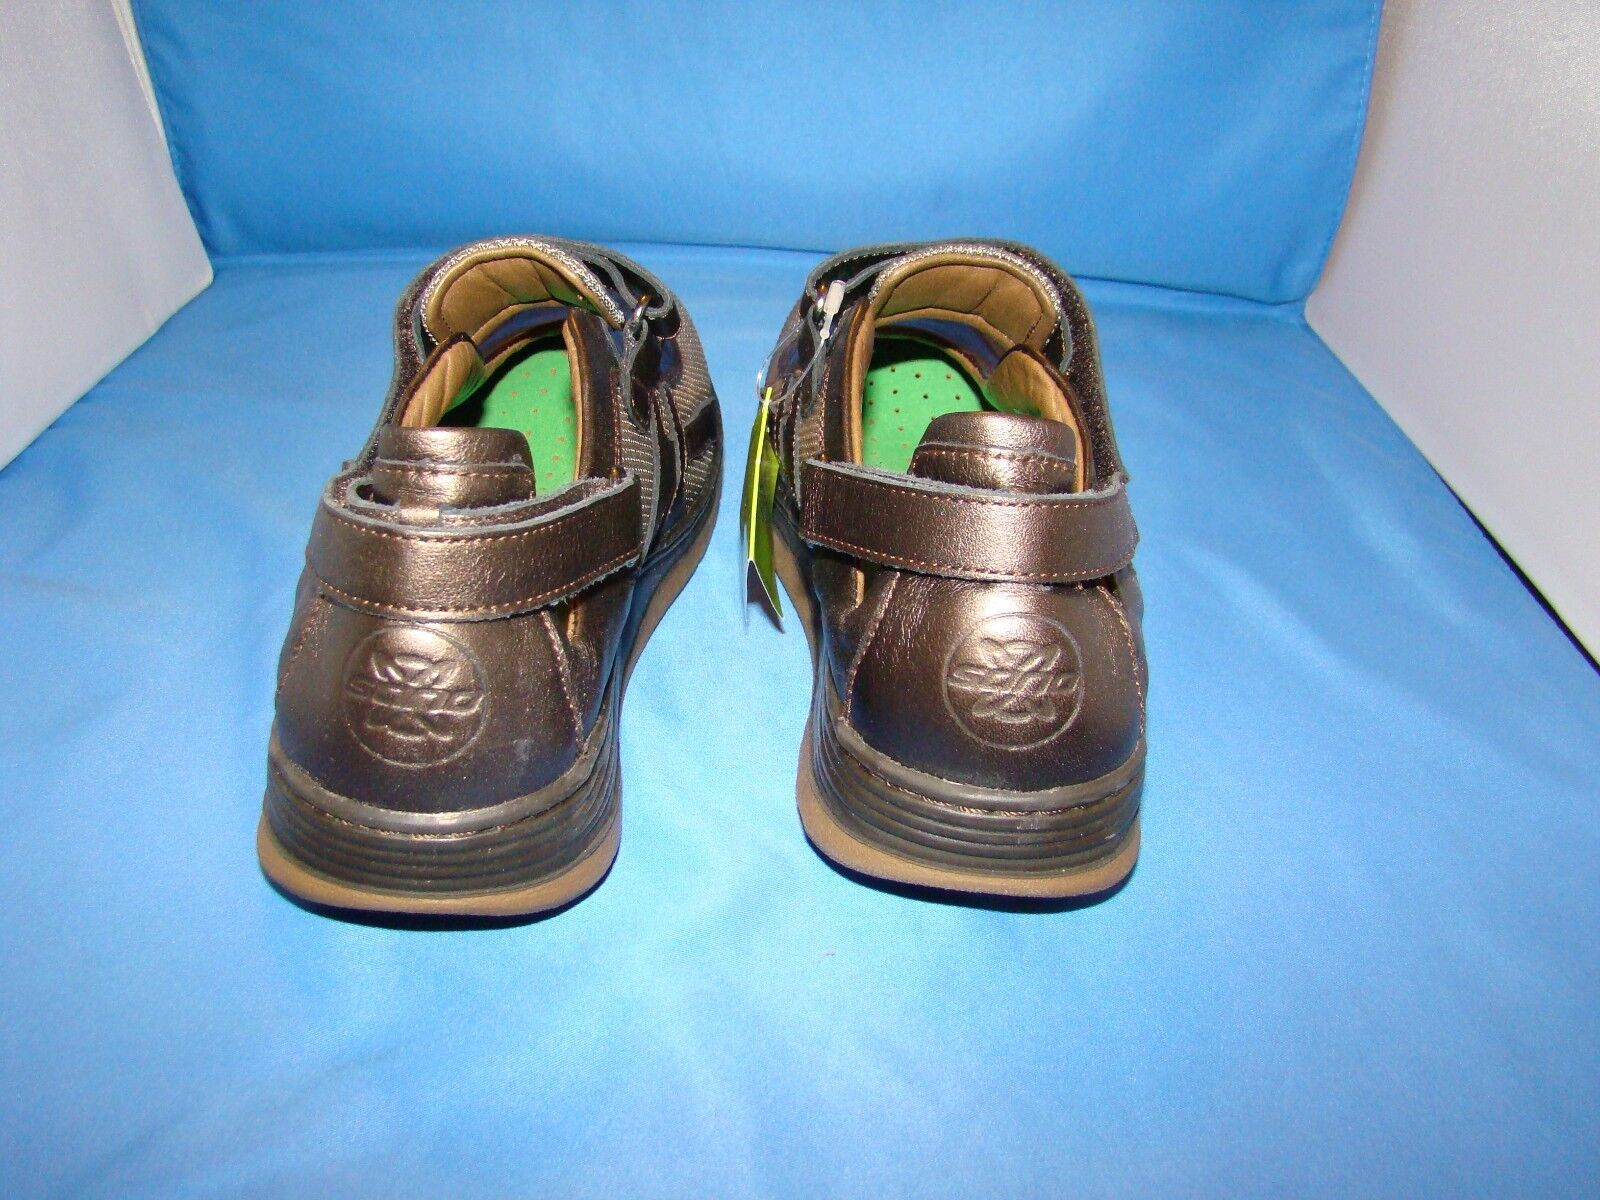 Donna Sano By By Sano Mephisto Excess Mary Jane Shoes Size-8 Bronze Perl Calfskin 7b404b